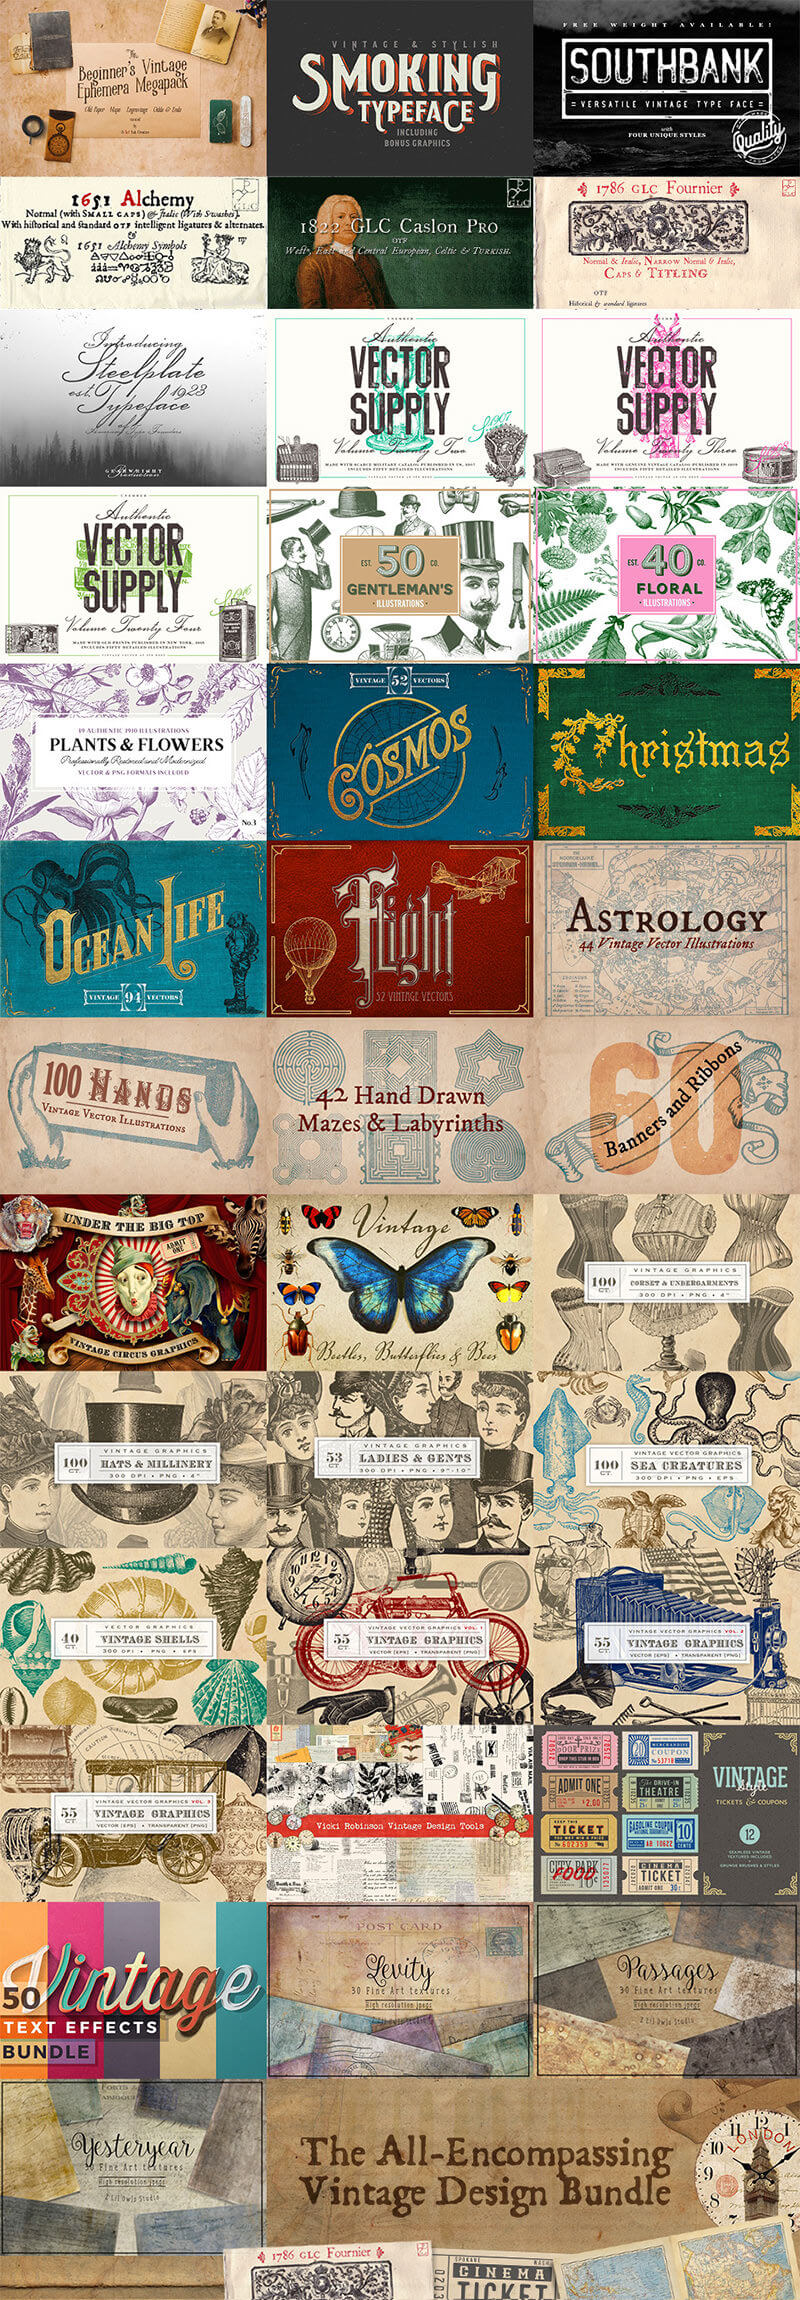 all-encompassing-vintage-bundle-grid-2